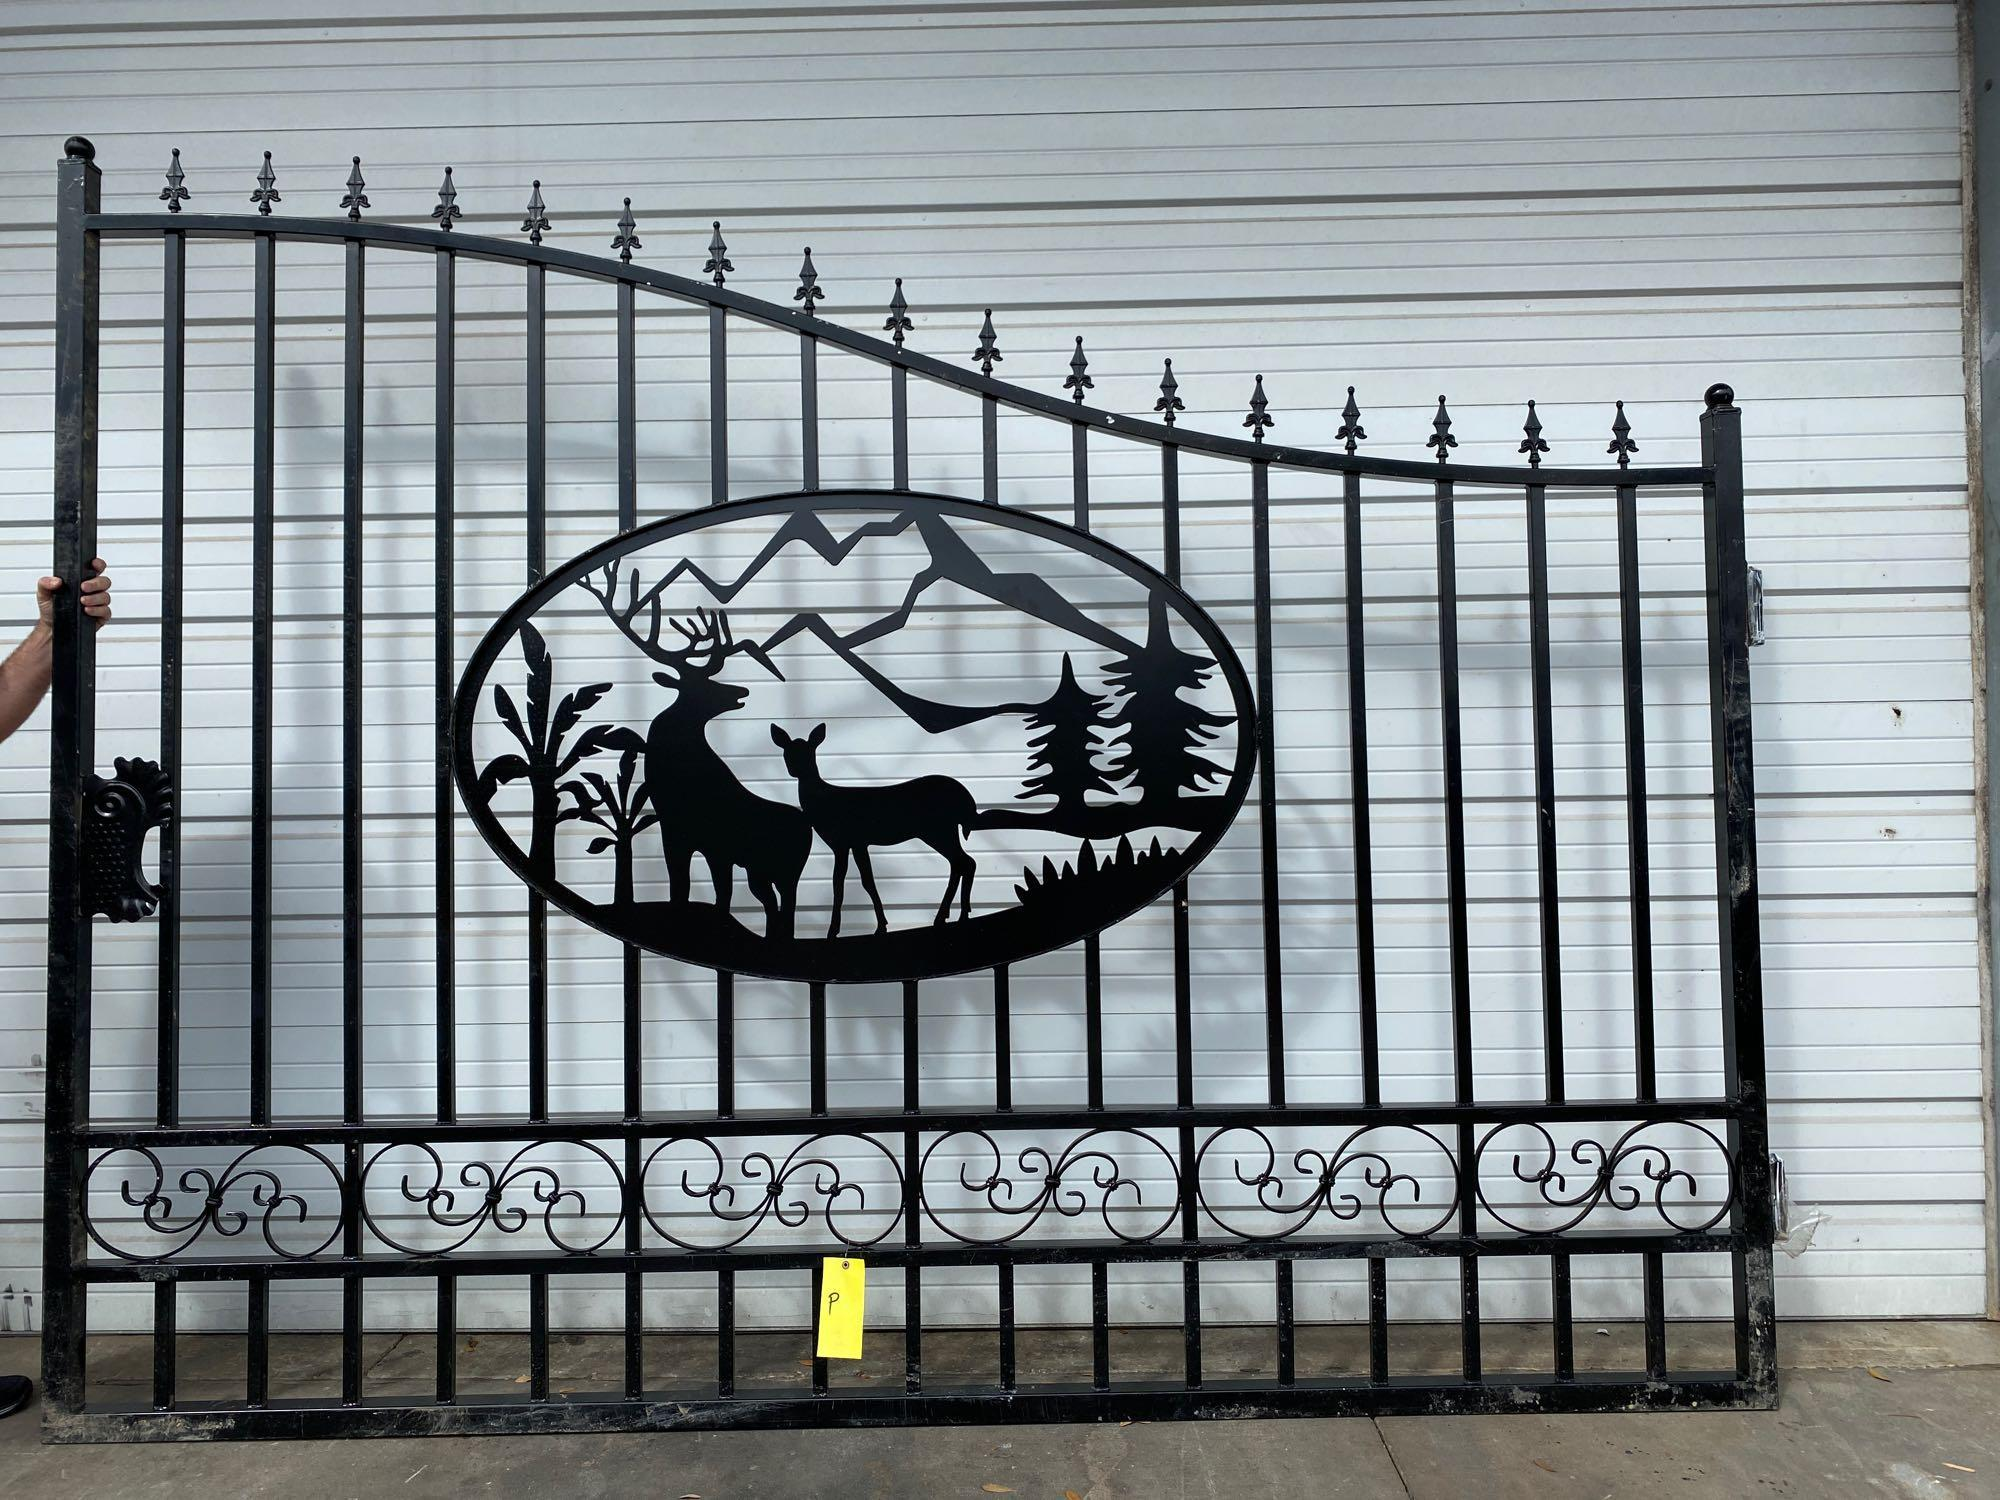 "NEW 20' BI-PARTING GATES, 10' EACH GATE, 90"" MAX HEIGHT - Image 2 of 5"